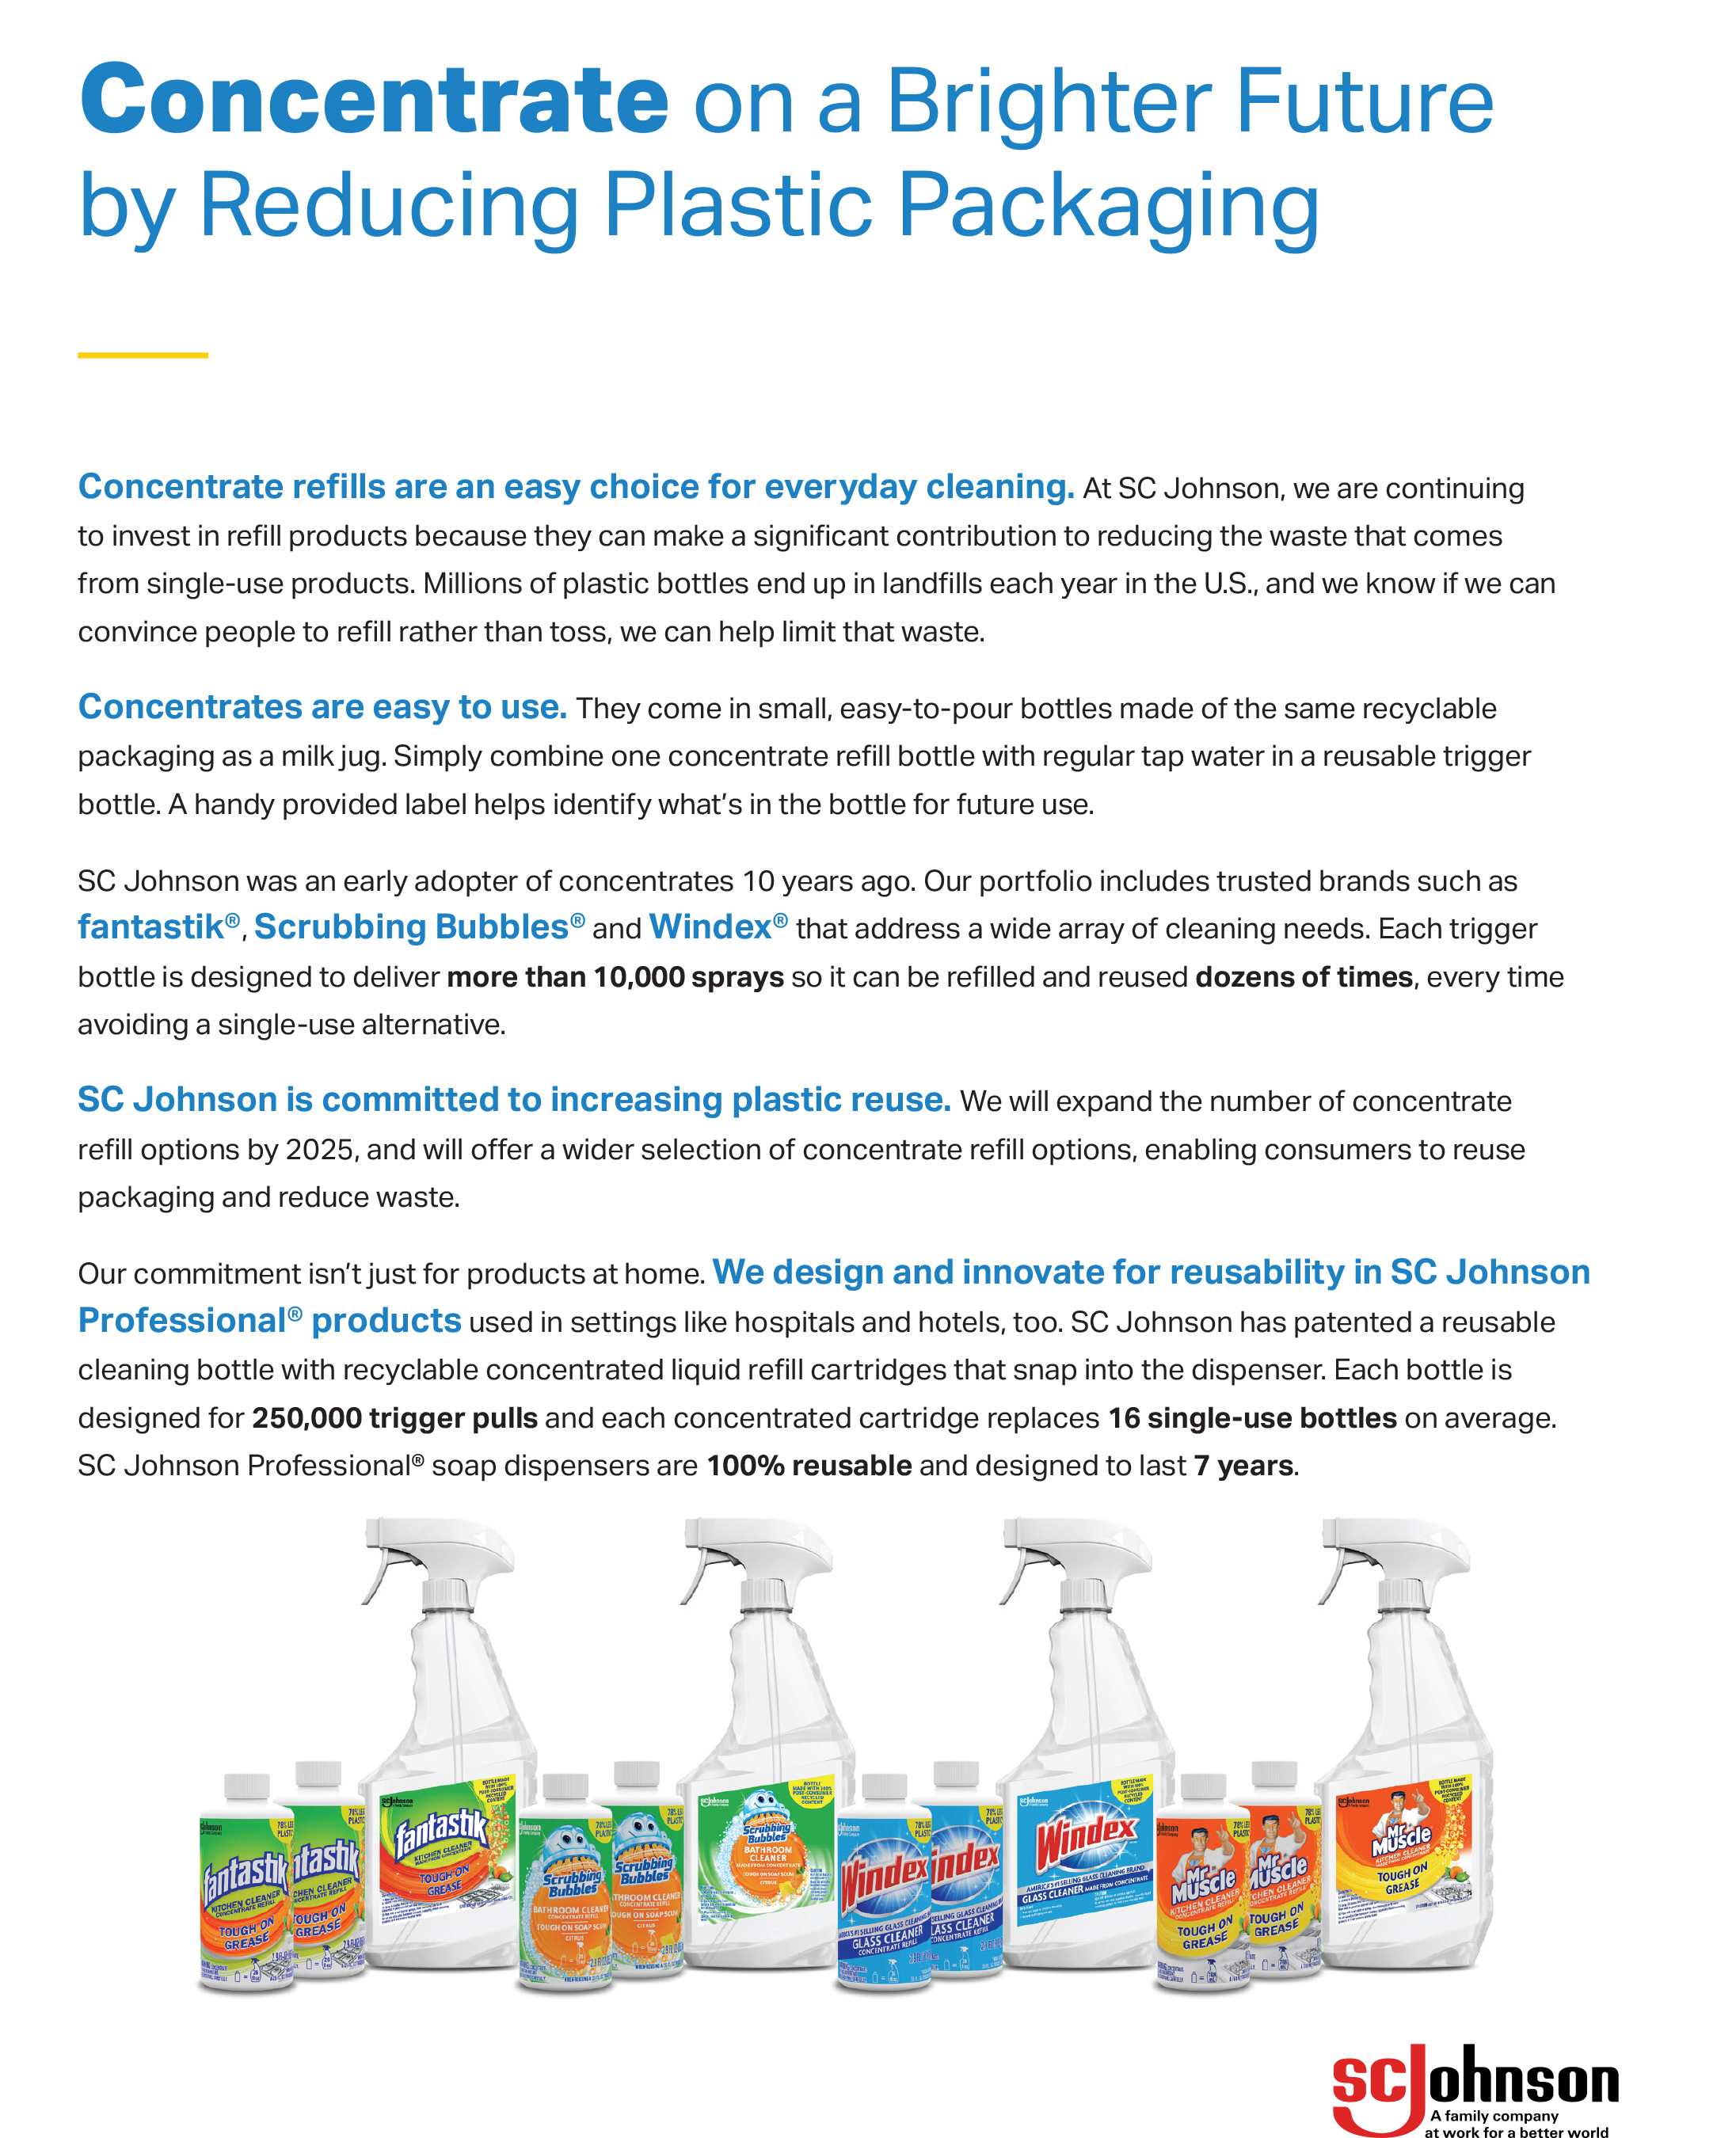 SC Johnson is committed to reducing plastic packaging